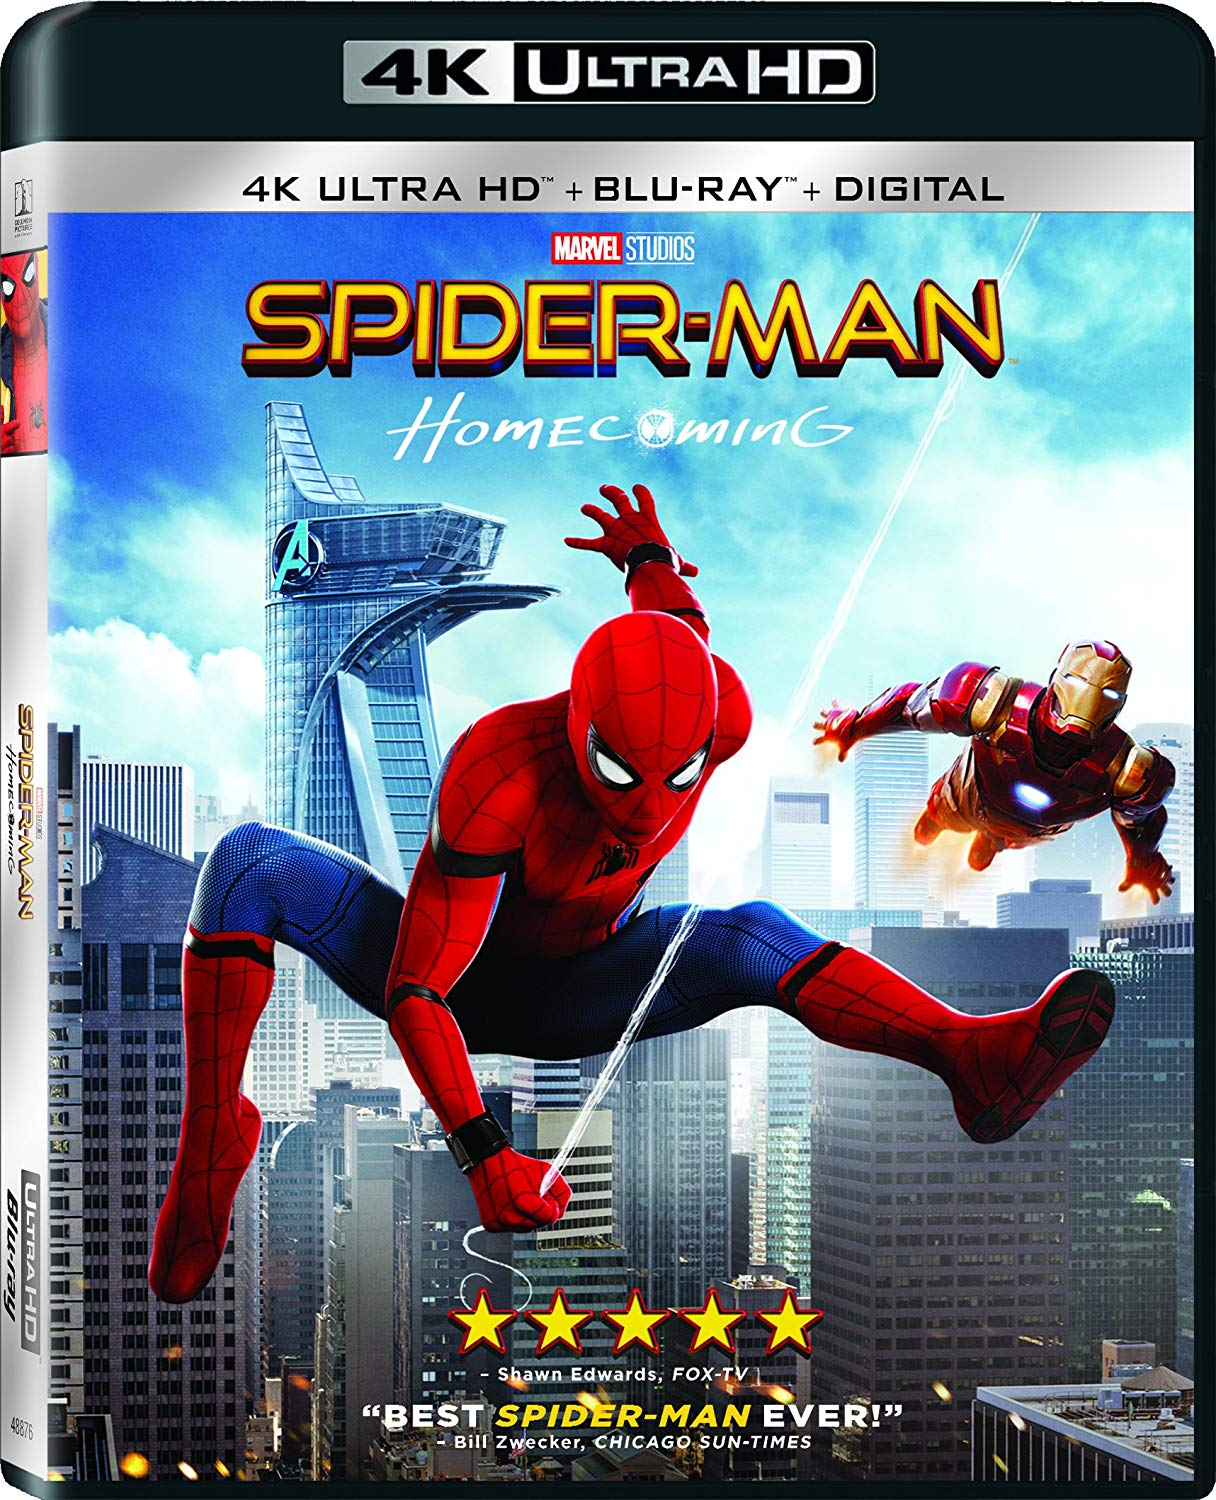 Download Spider-Man Homecoming 2017 2160p BluRay x265 HEVC